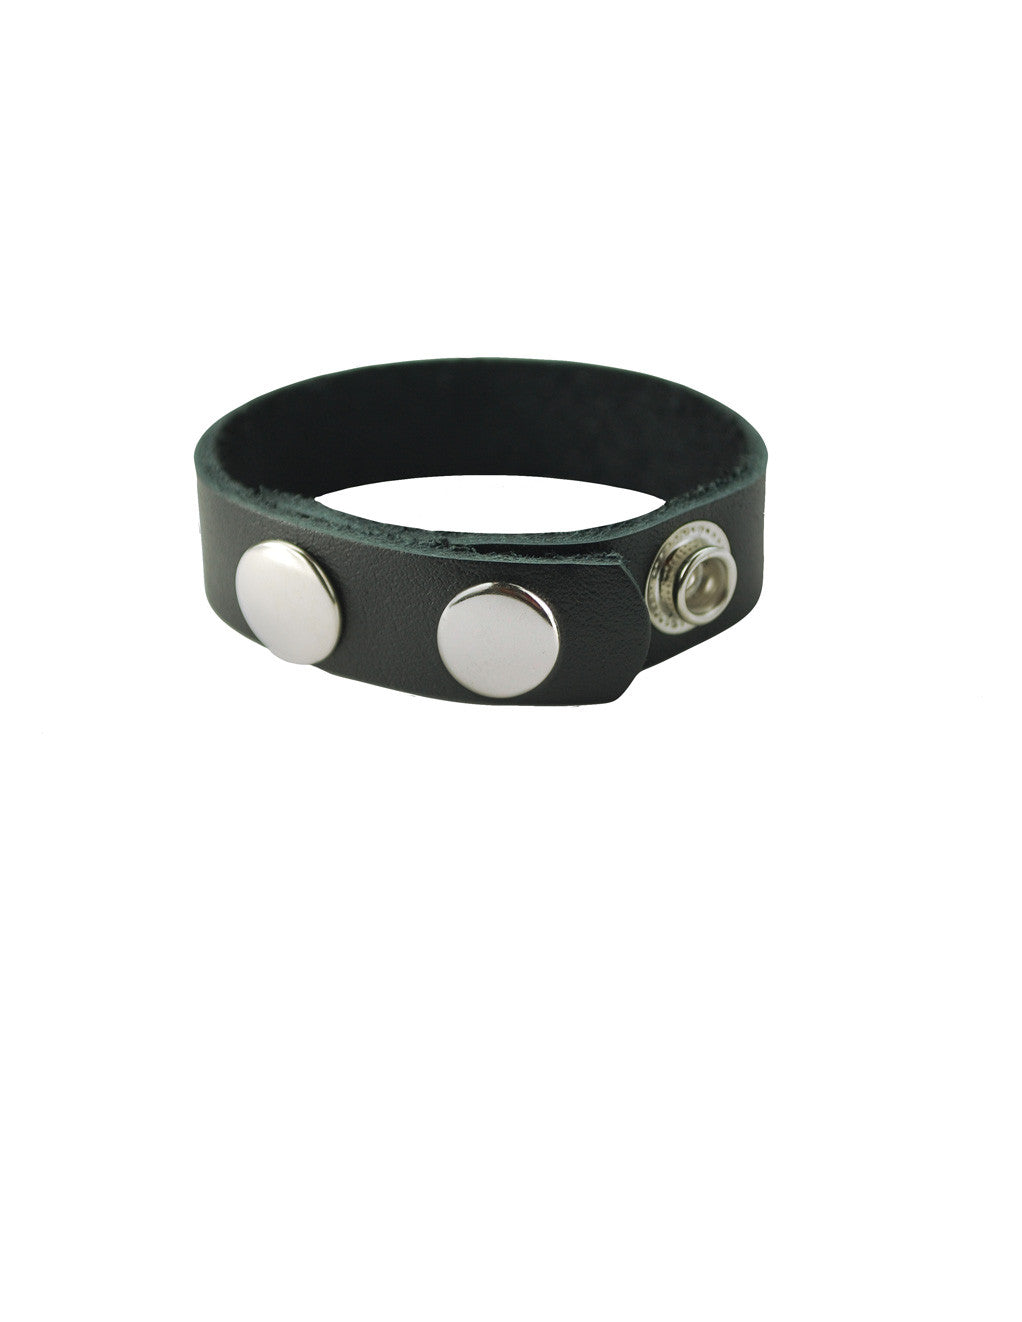 Spartacus Leather & Metal Snap Cockring